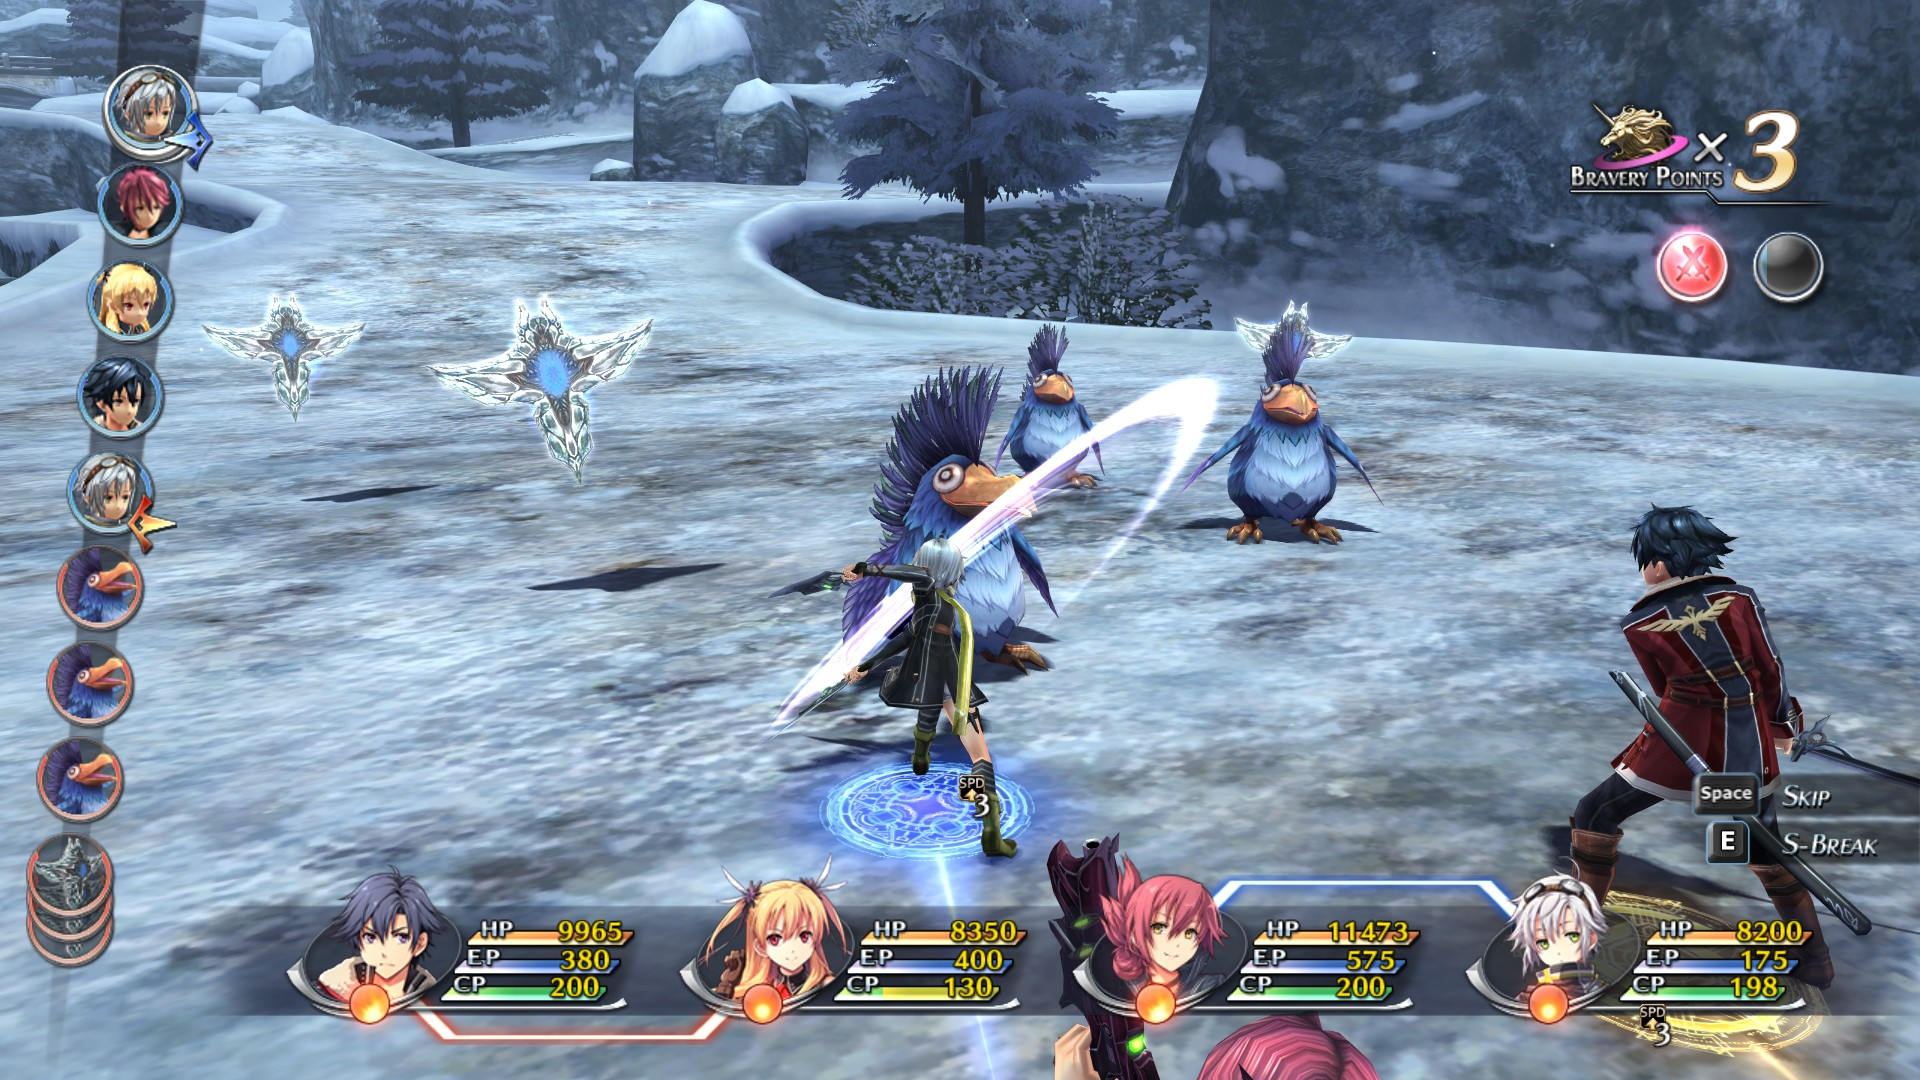 The-Legend-of-Heroes-Trails-of-Cold-steel-II-Screenshot-06.jpg